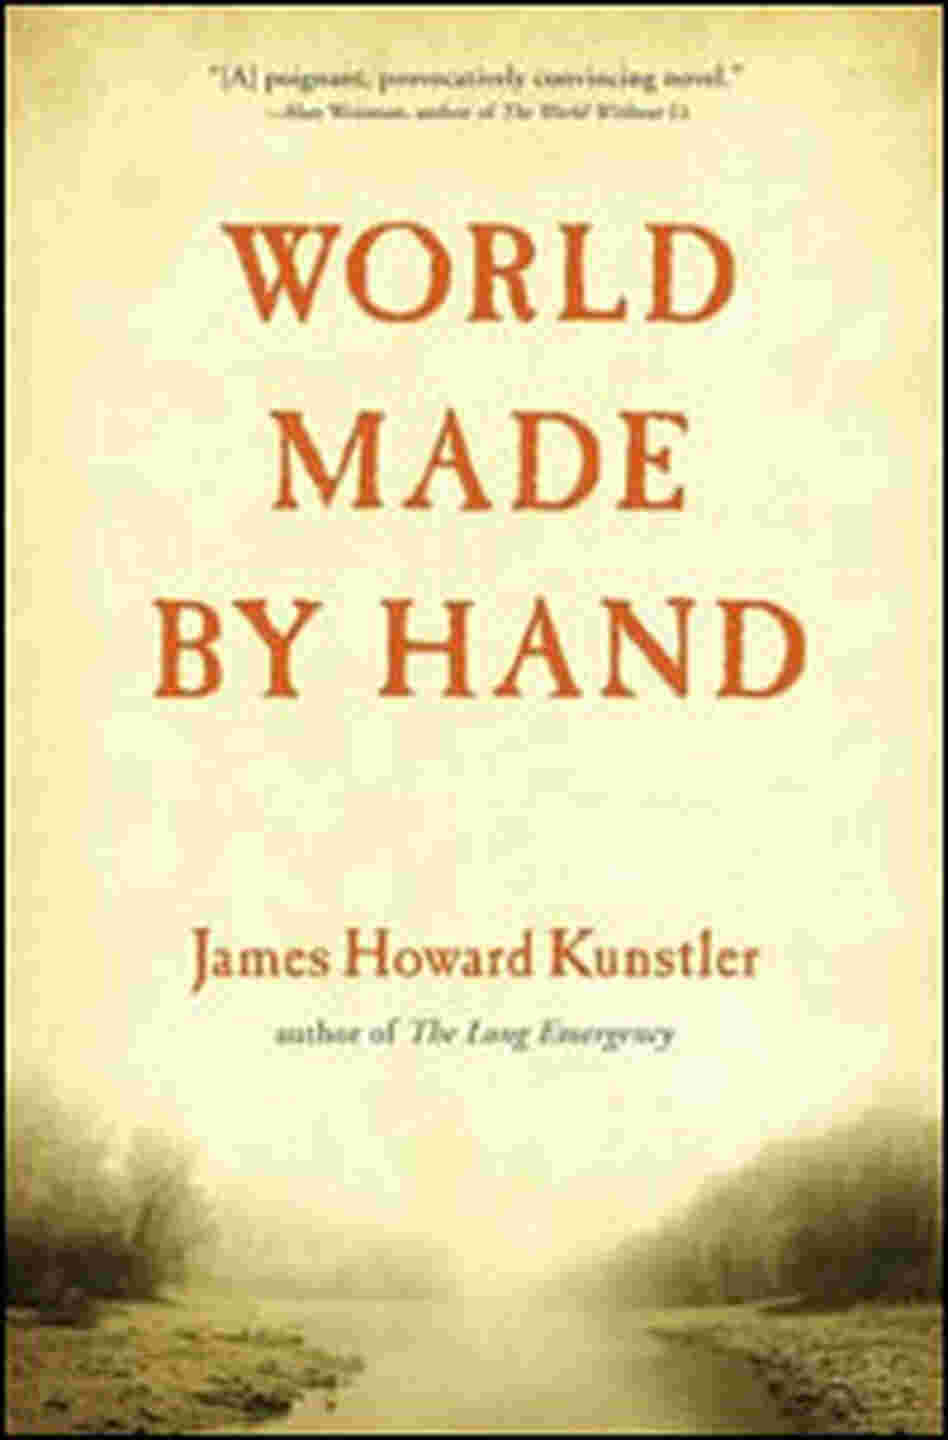 'World Made By Hand'